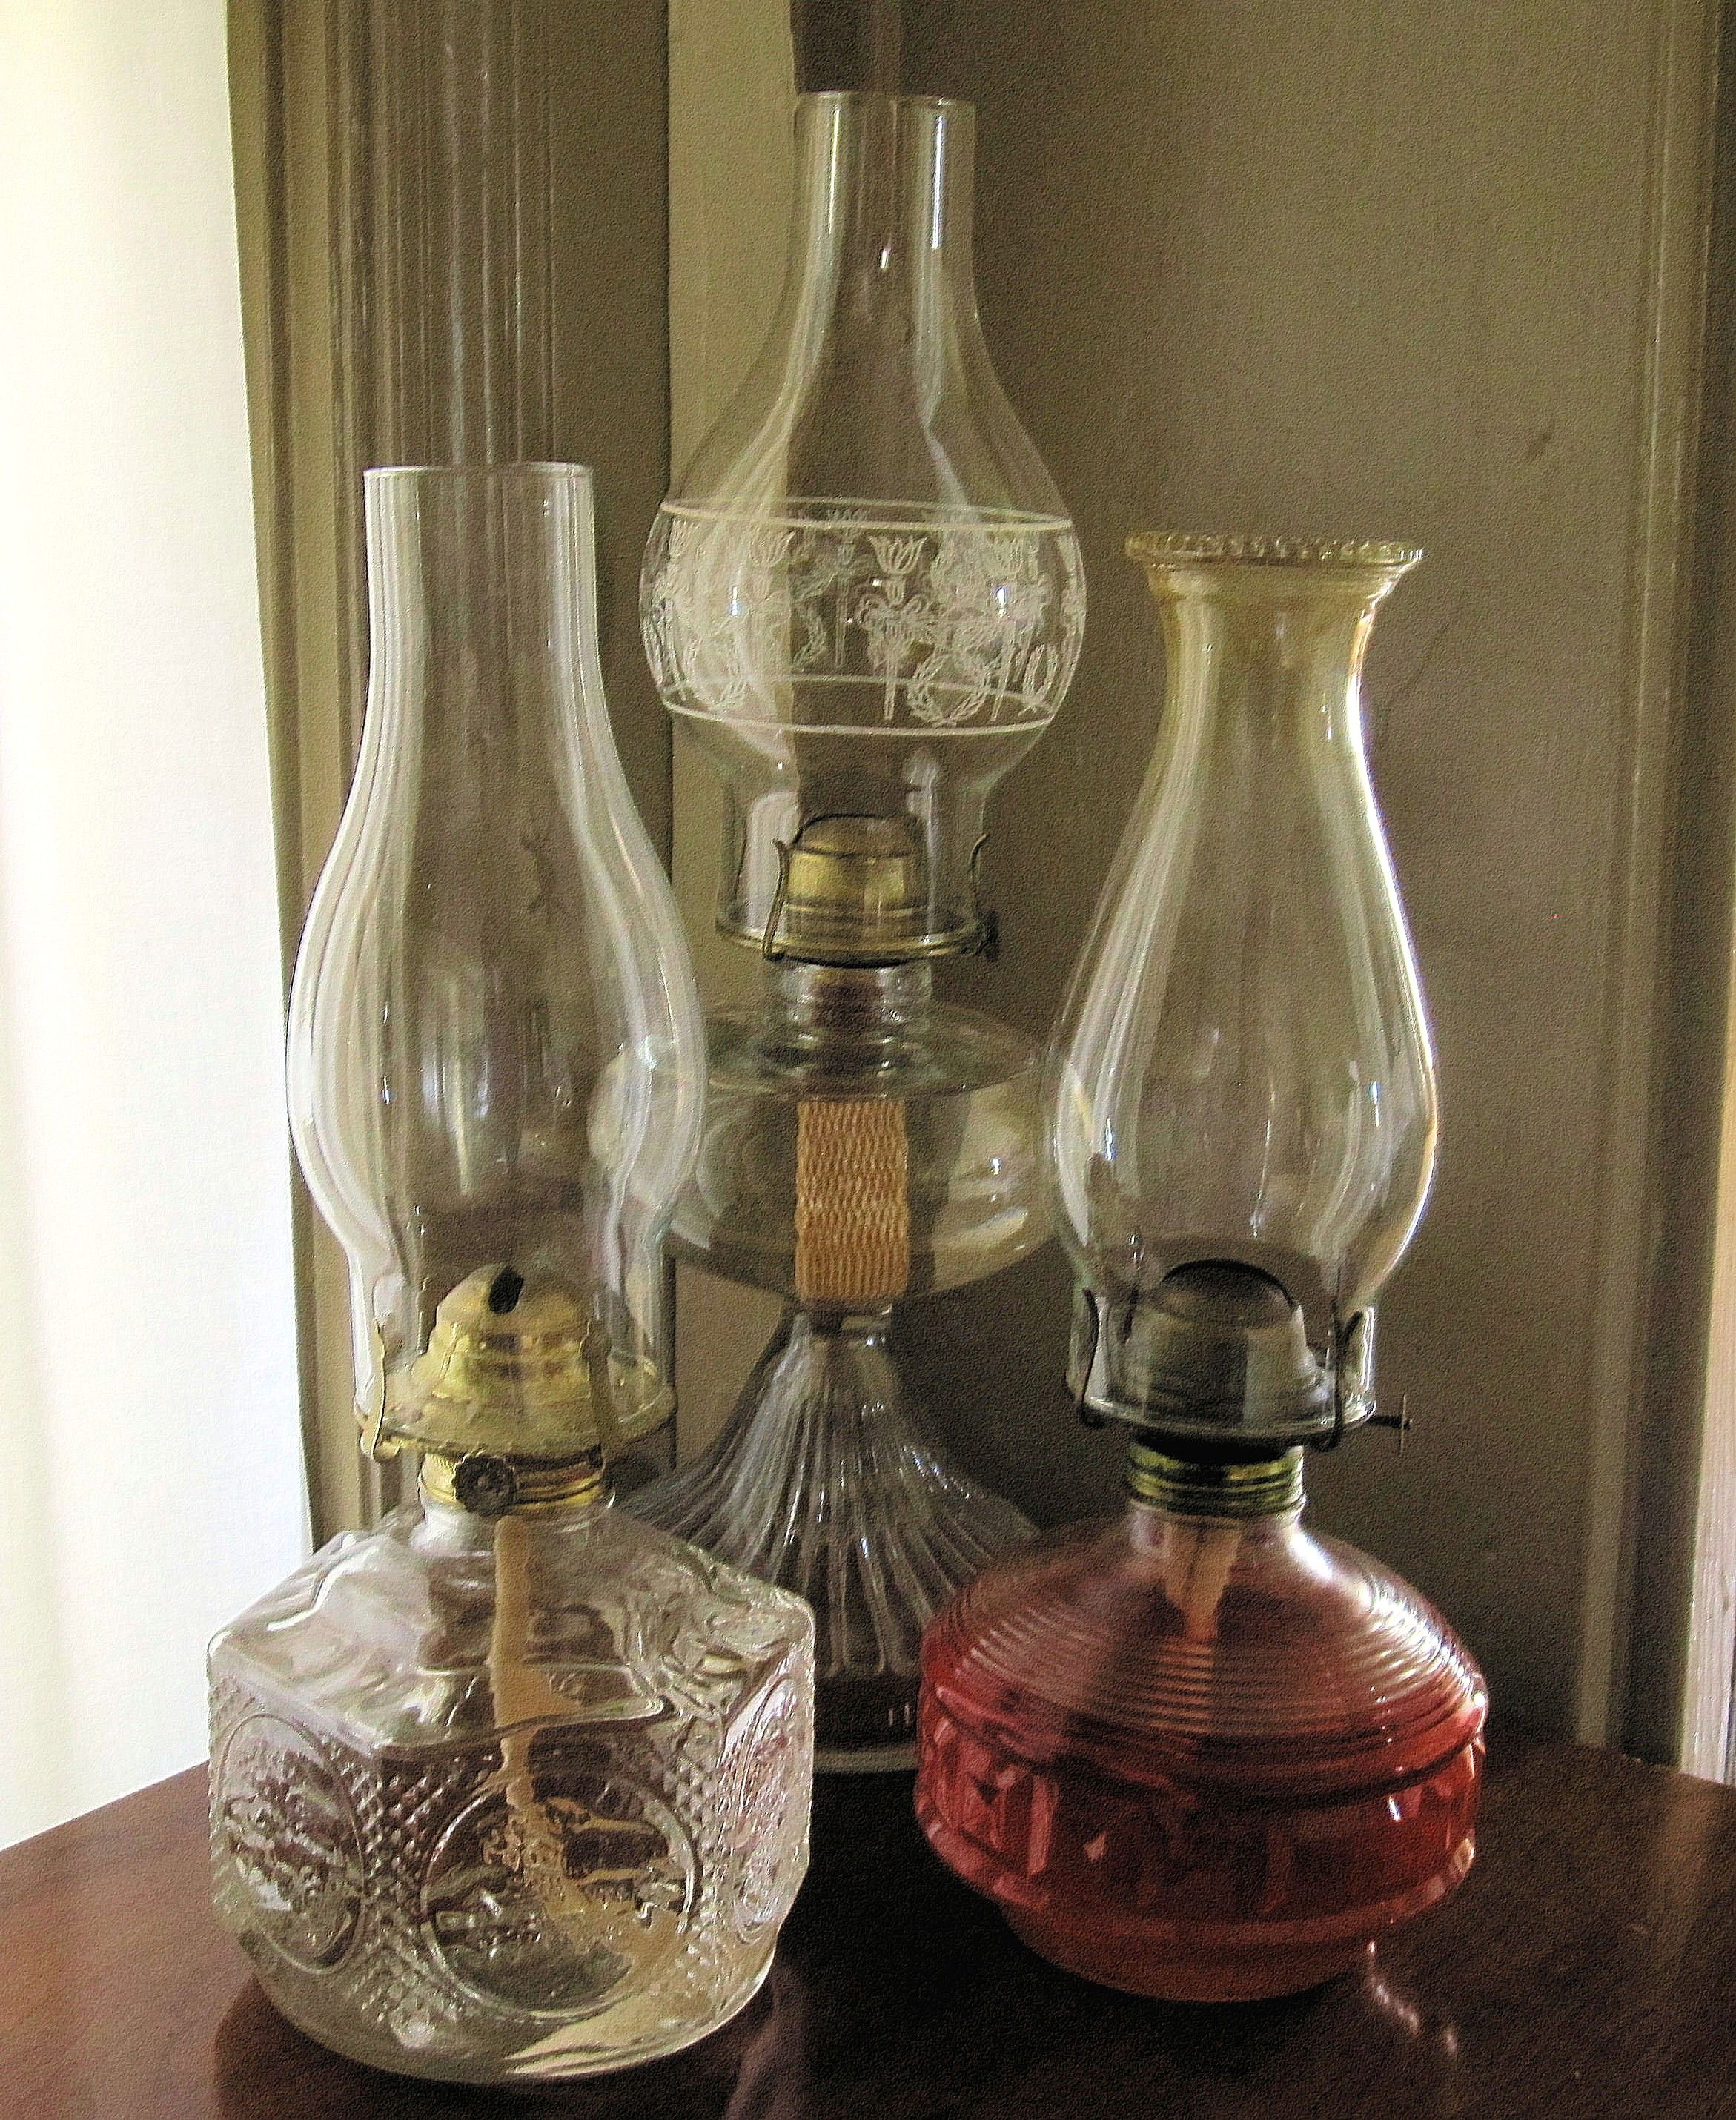 Lampara De Parafina Flat Wick Oil Lamps Advice About Oil Lamps Estilo